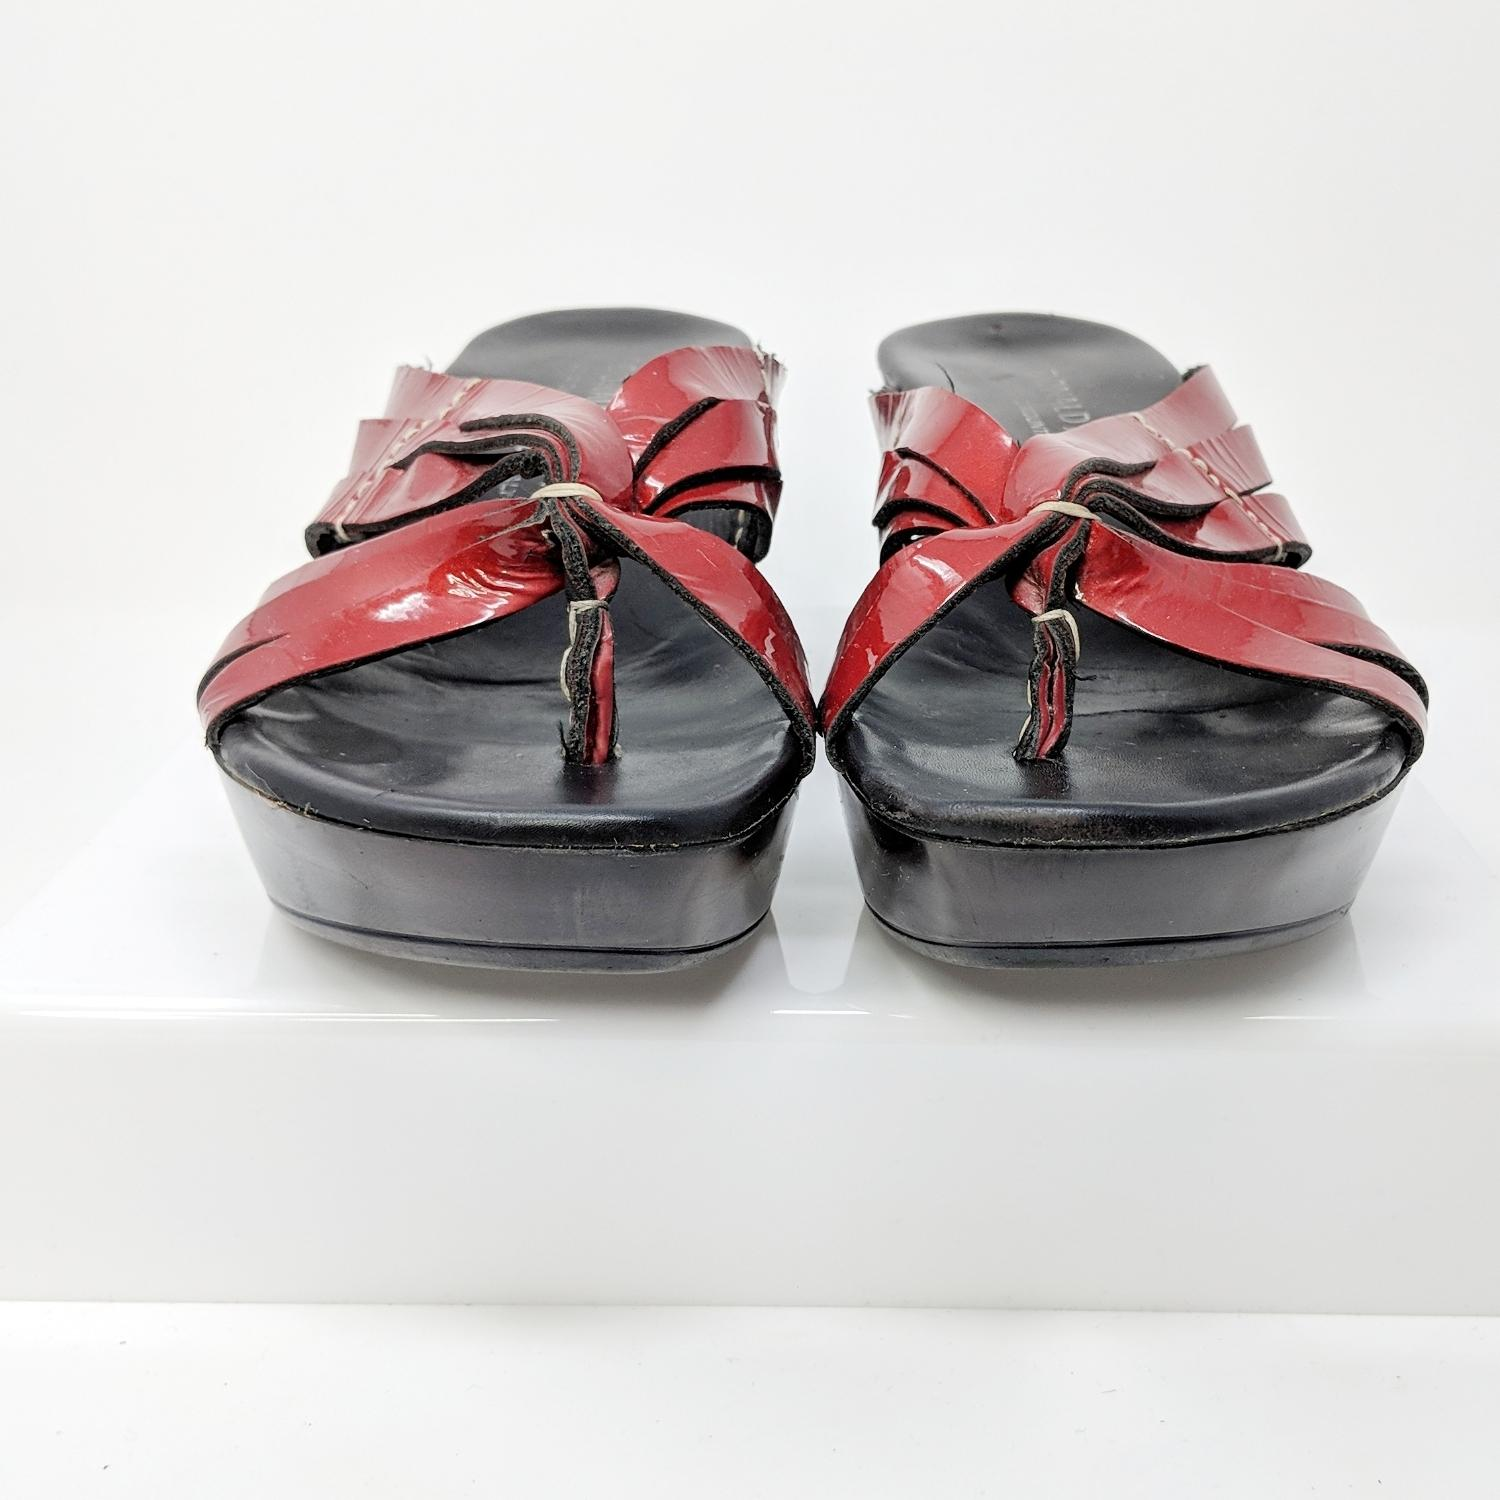 5a1500301b ... Donald J. Pliner Red Cathe Strappy Patent Patent Patent Leather Wedge Sandals  Size US 8 ...